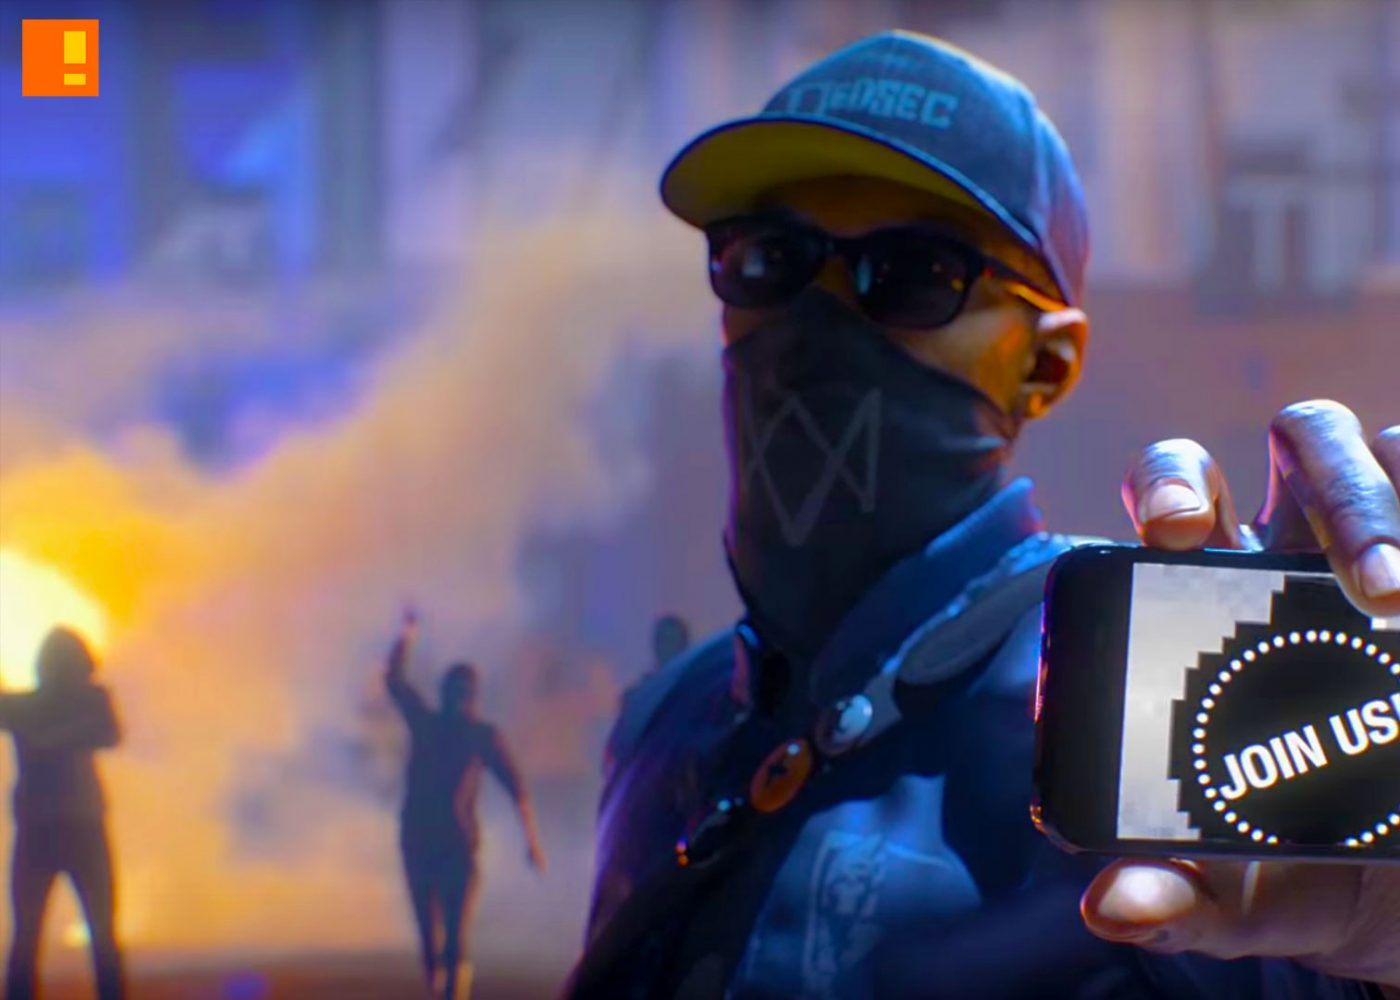 watch dogs 2, trailer, ubisoft, the action pixel, entertainment on tap, the action pixel